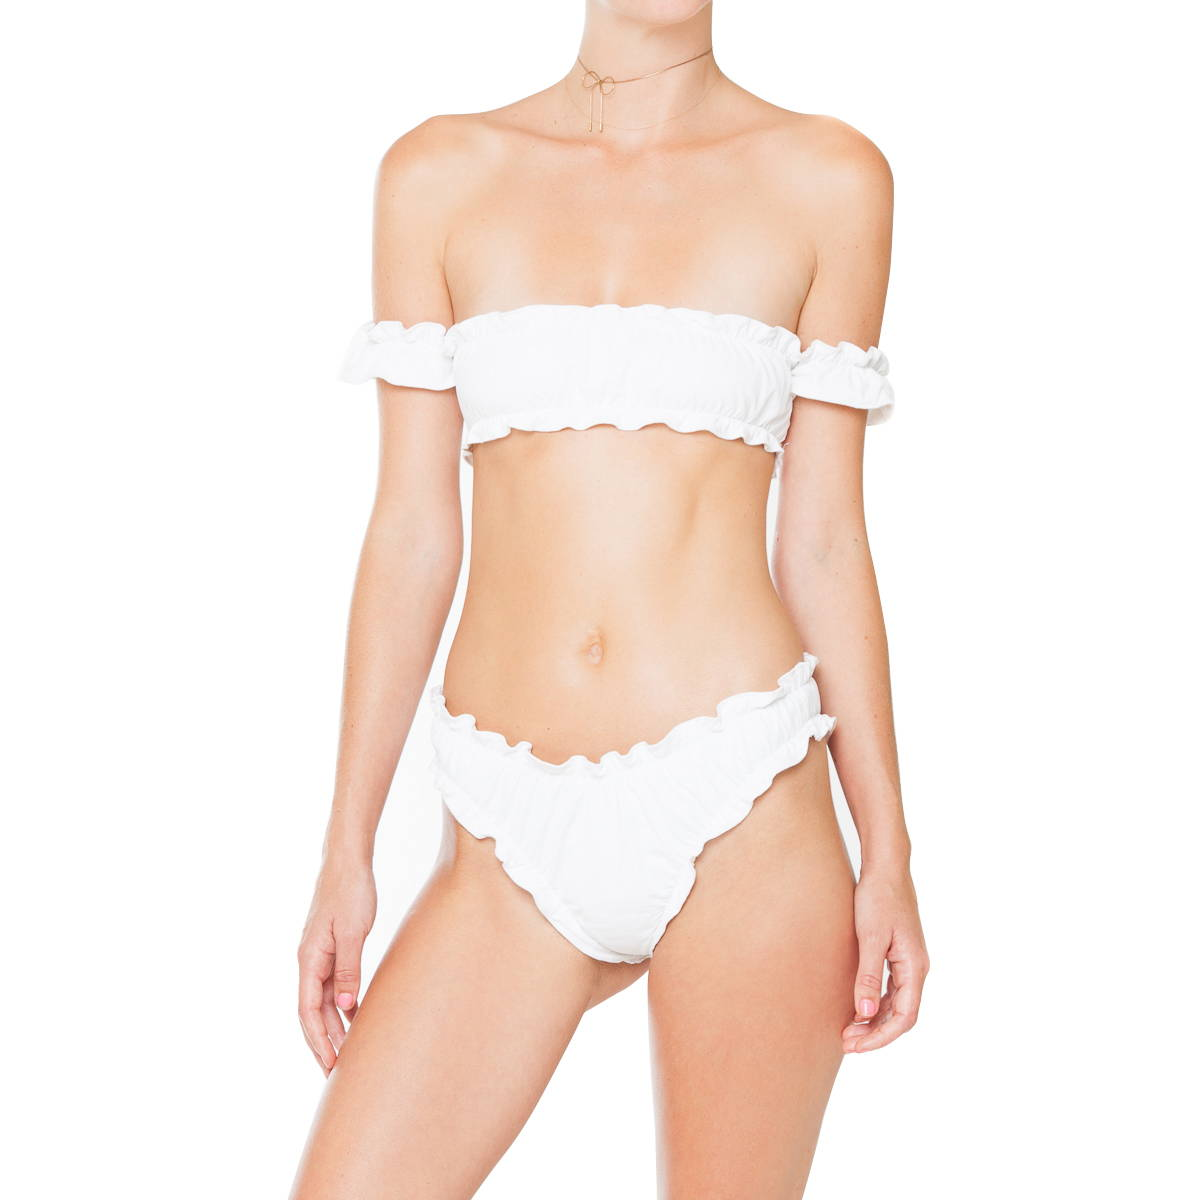 f3825788d6 So much sweetness. Tuille is a lettuce edged bandeau with dainty attached  sleeves.